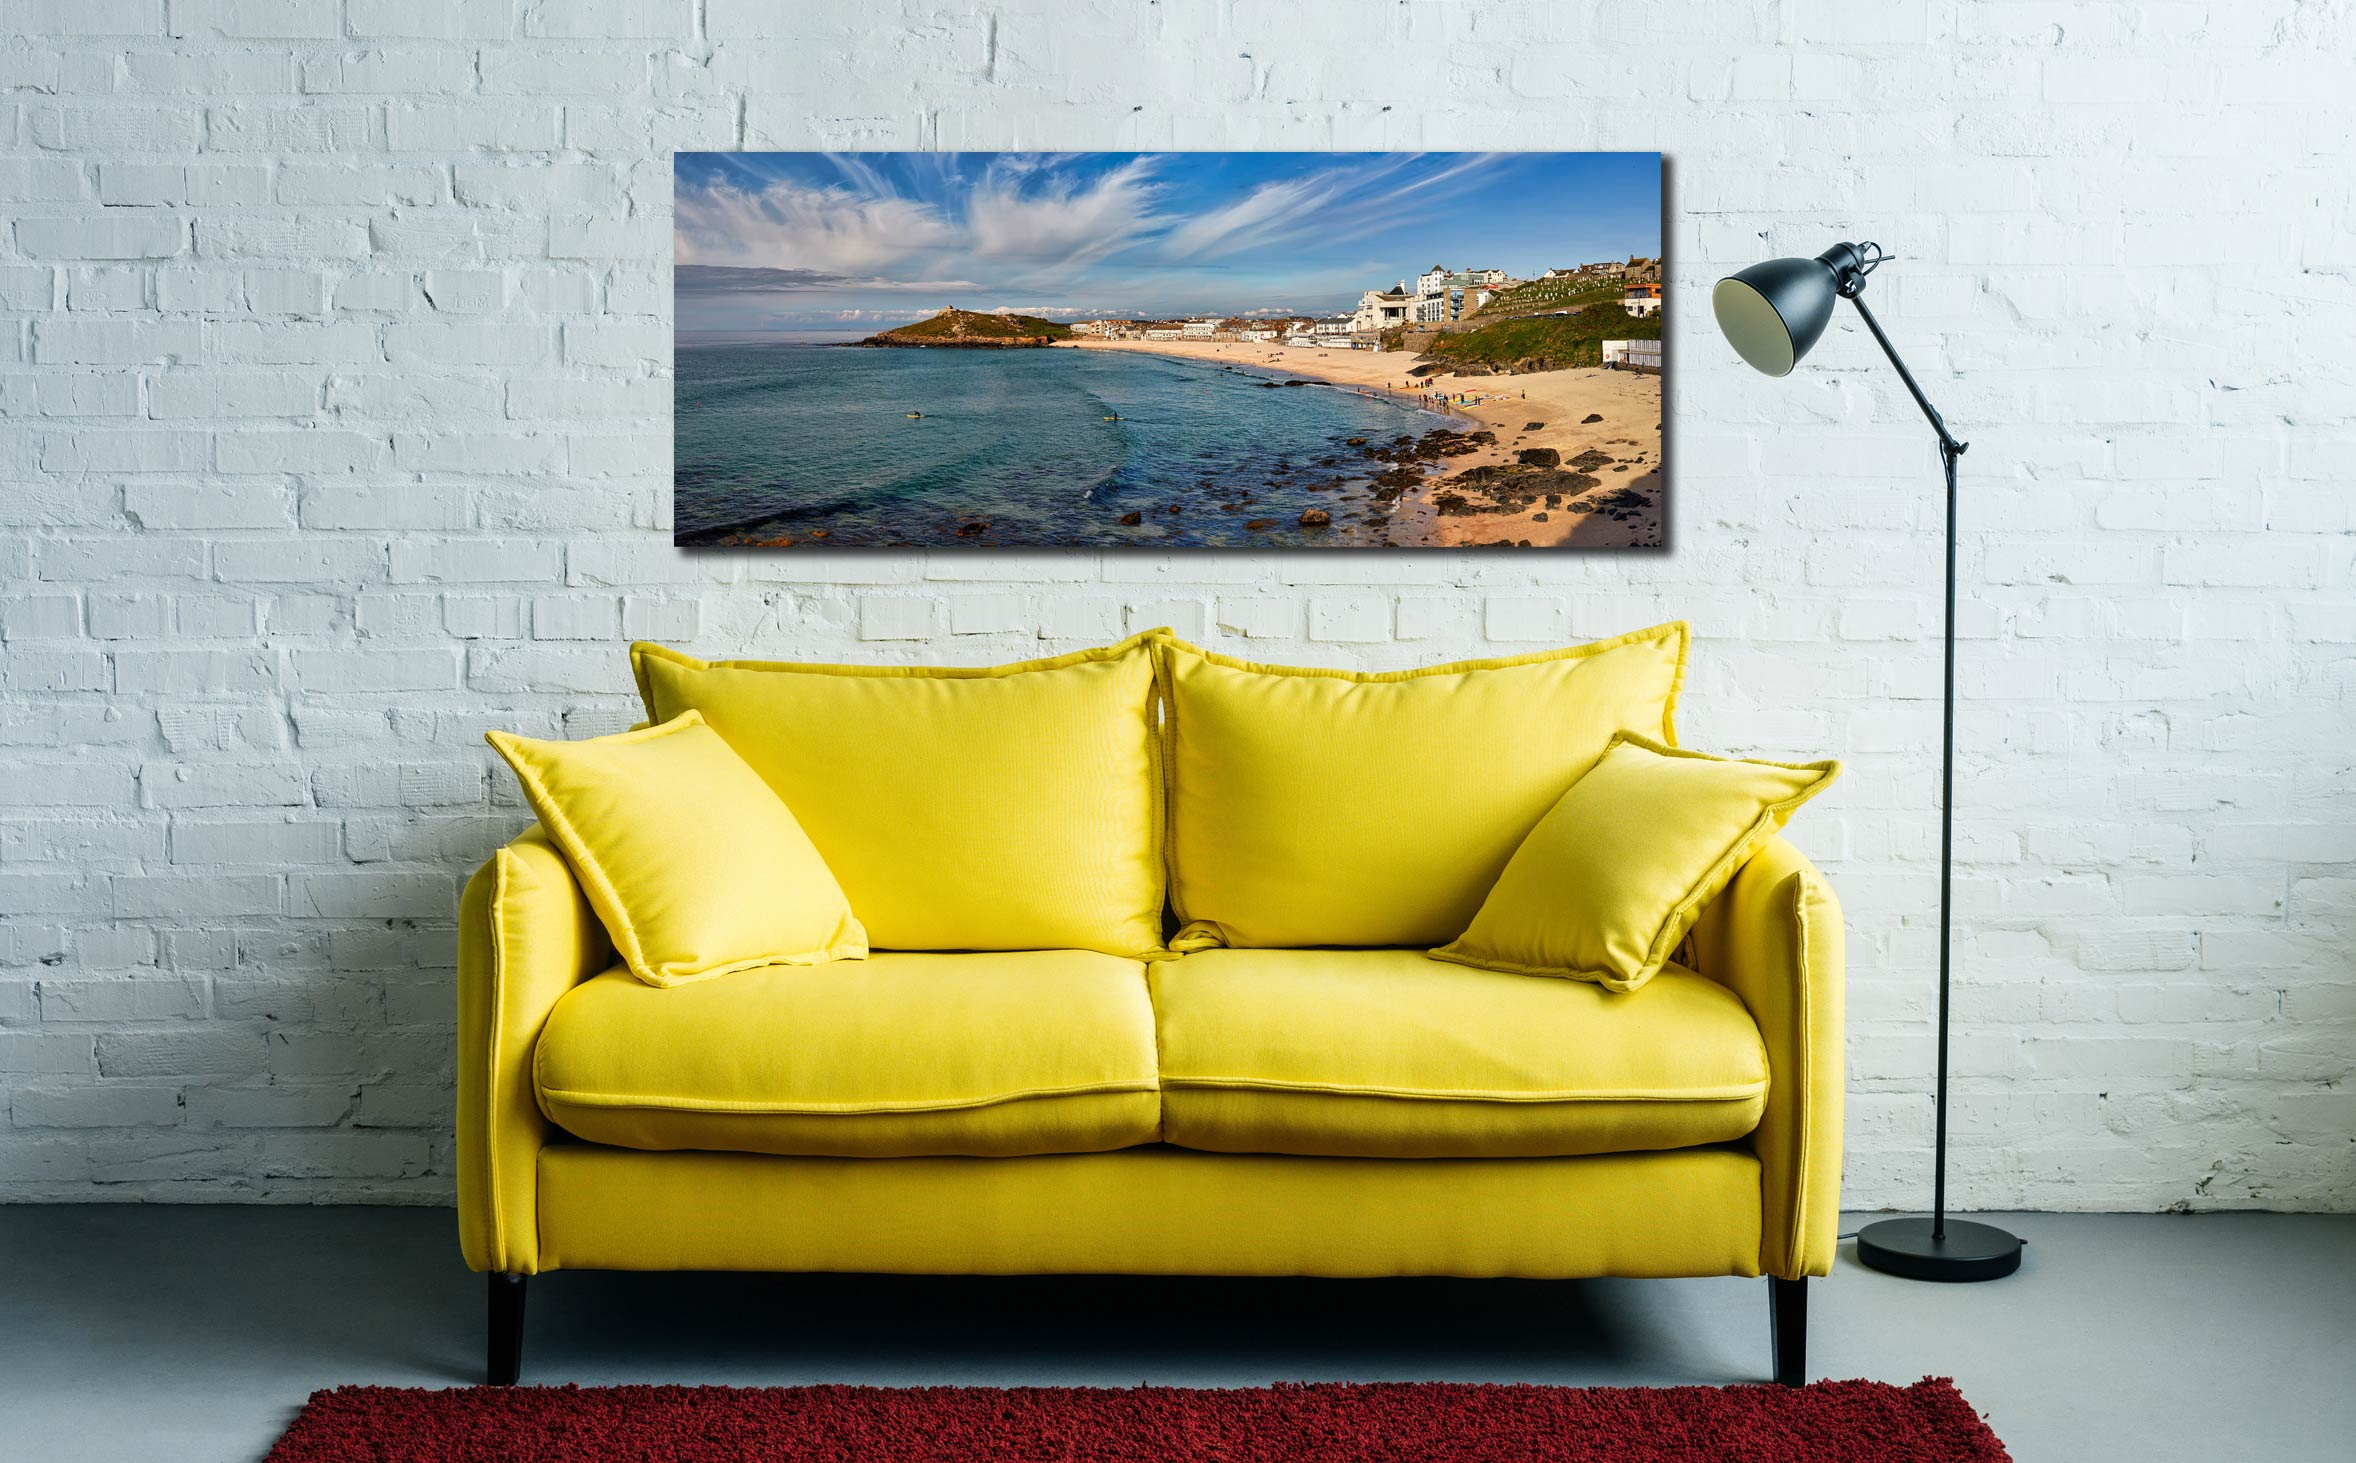 The green waters and golden sands of Porthmeor Beach in St Ives - Print Aluminium Backing With Acrylic Glazing on Wall